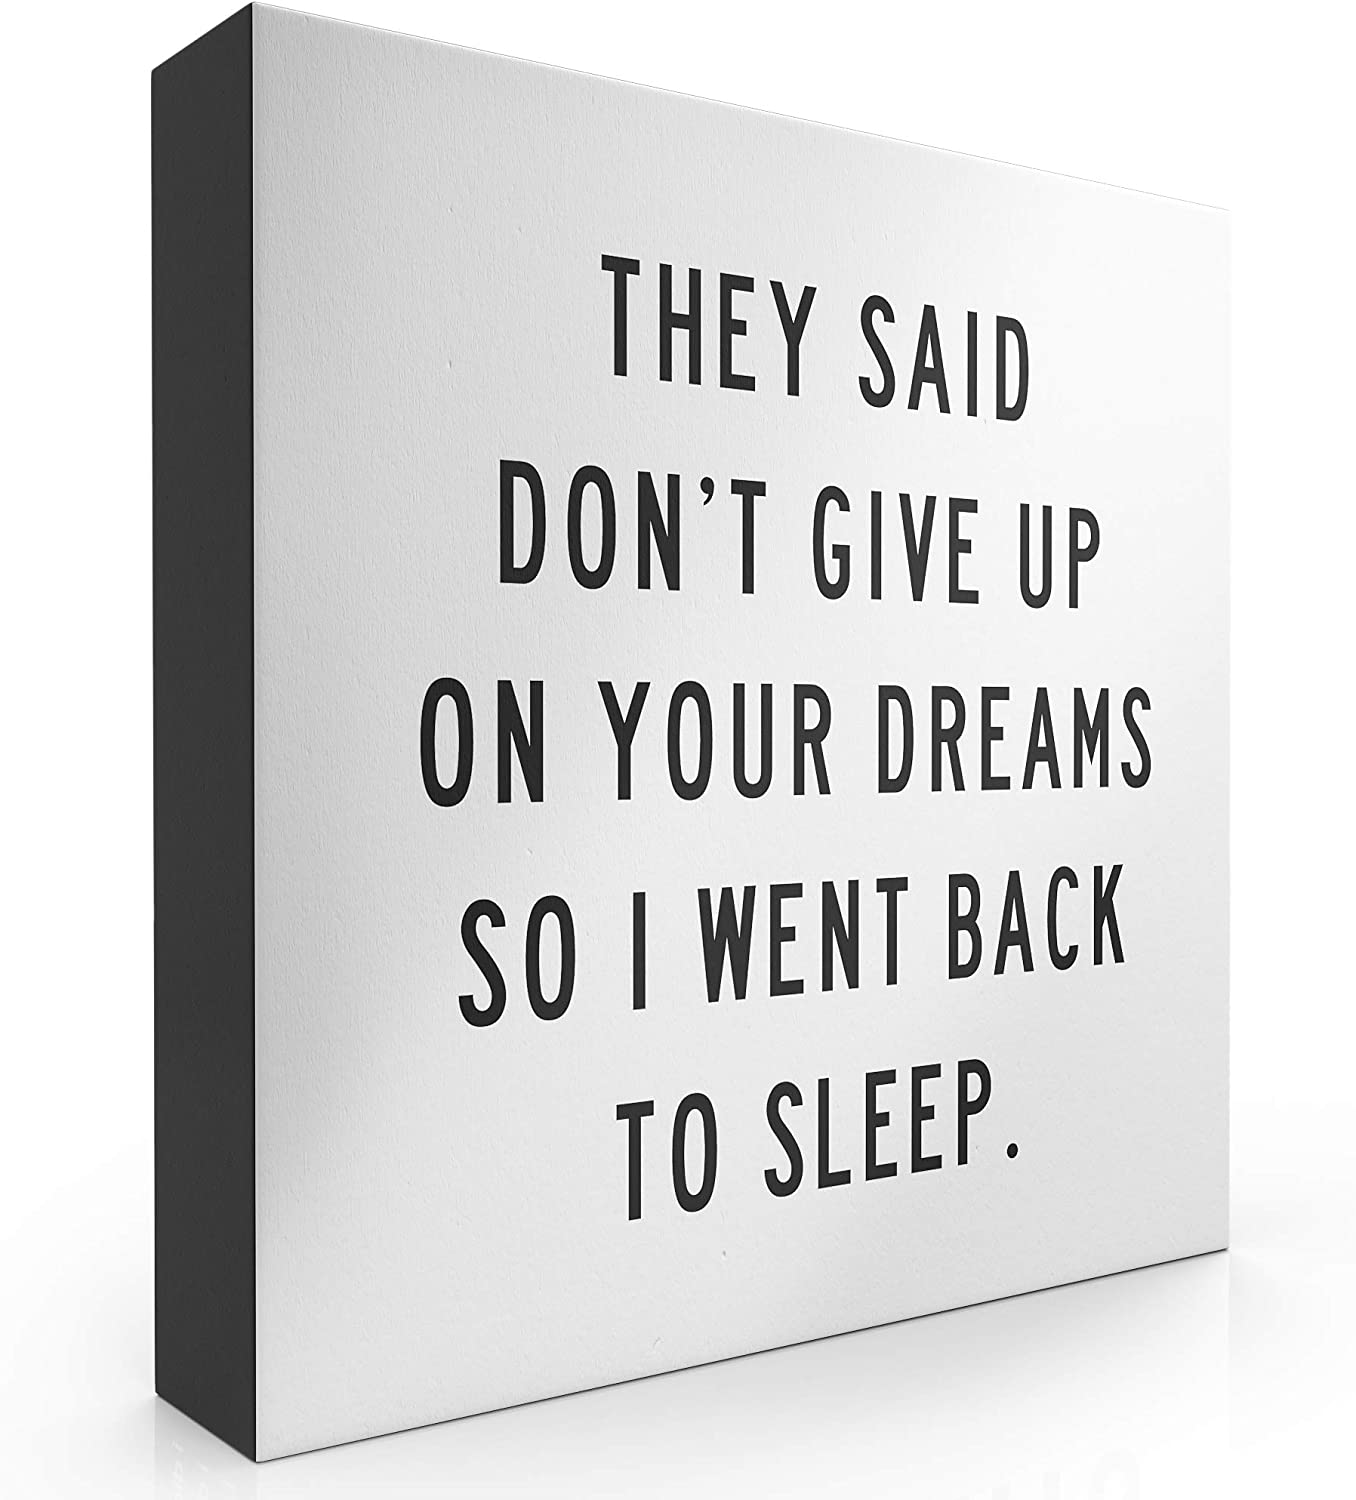 """Modern Market They Said Don't Give Up On Your Dreams So I Went Back to Sleep Box Sign Modern Funny Quote Home and Bedroom Decor Wooden Sign with Sayings 8"""" x 8"""""""